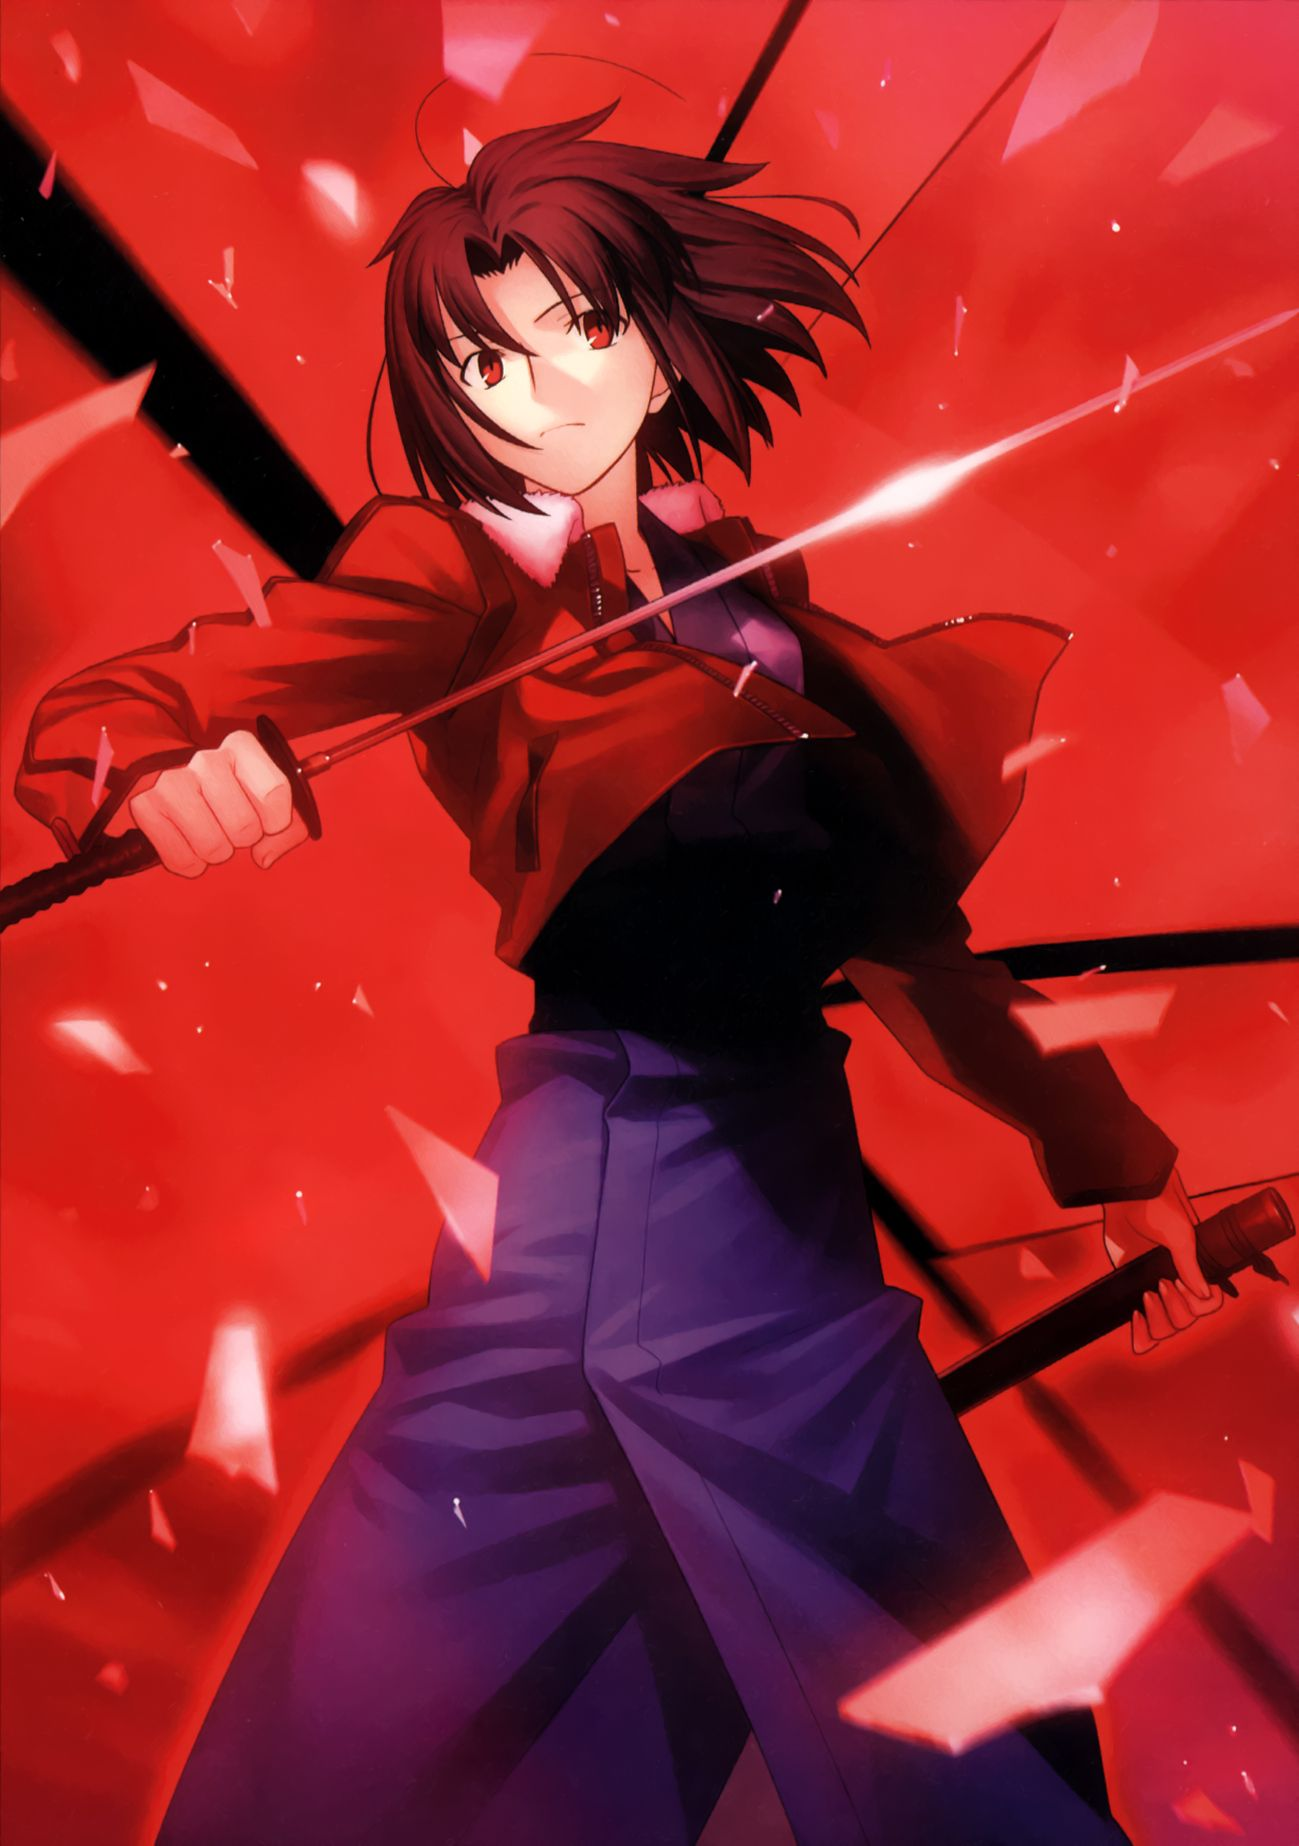 Takeuchi Takashi, TYPEMOON, Kara no Kyoukai, catalogue